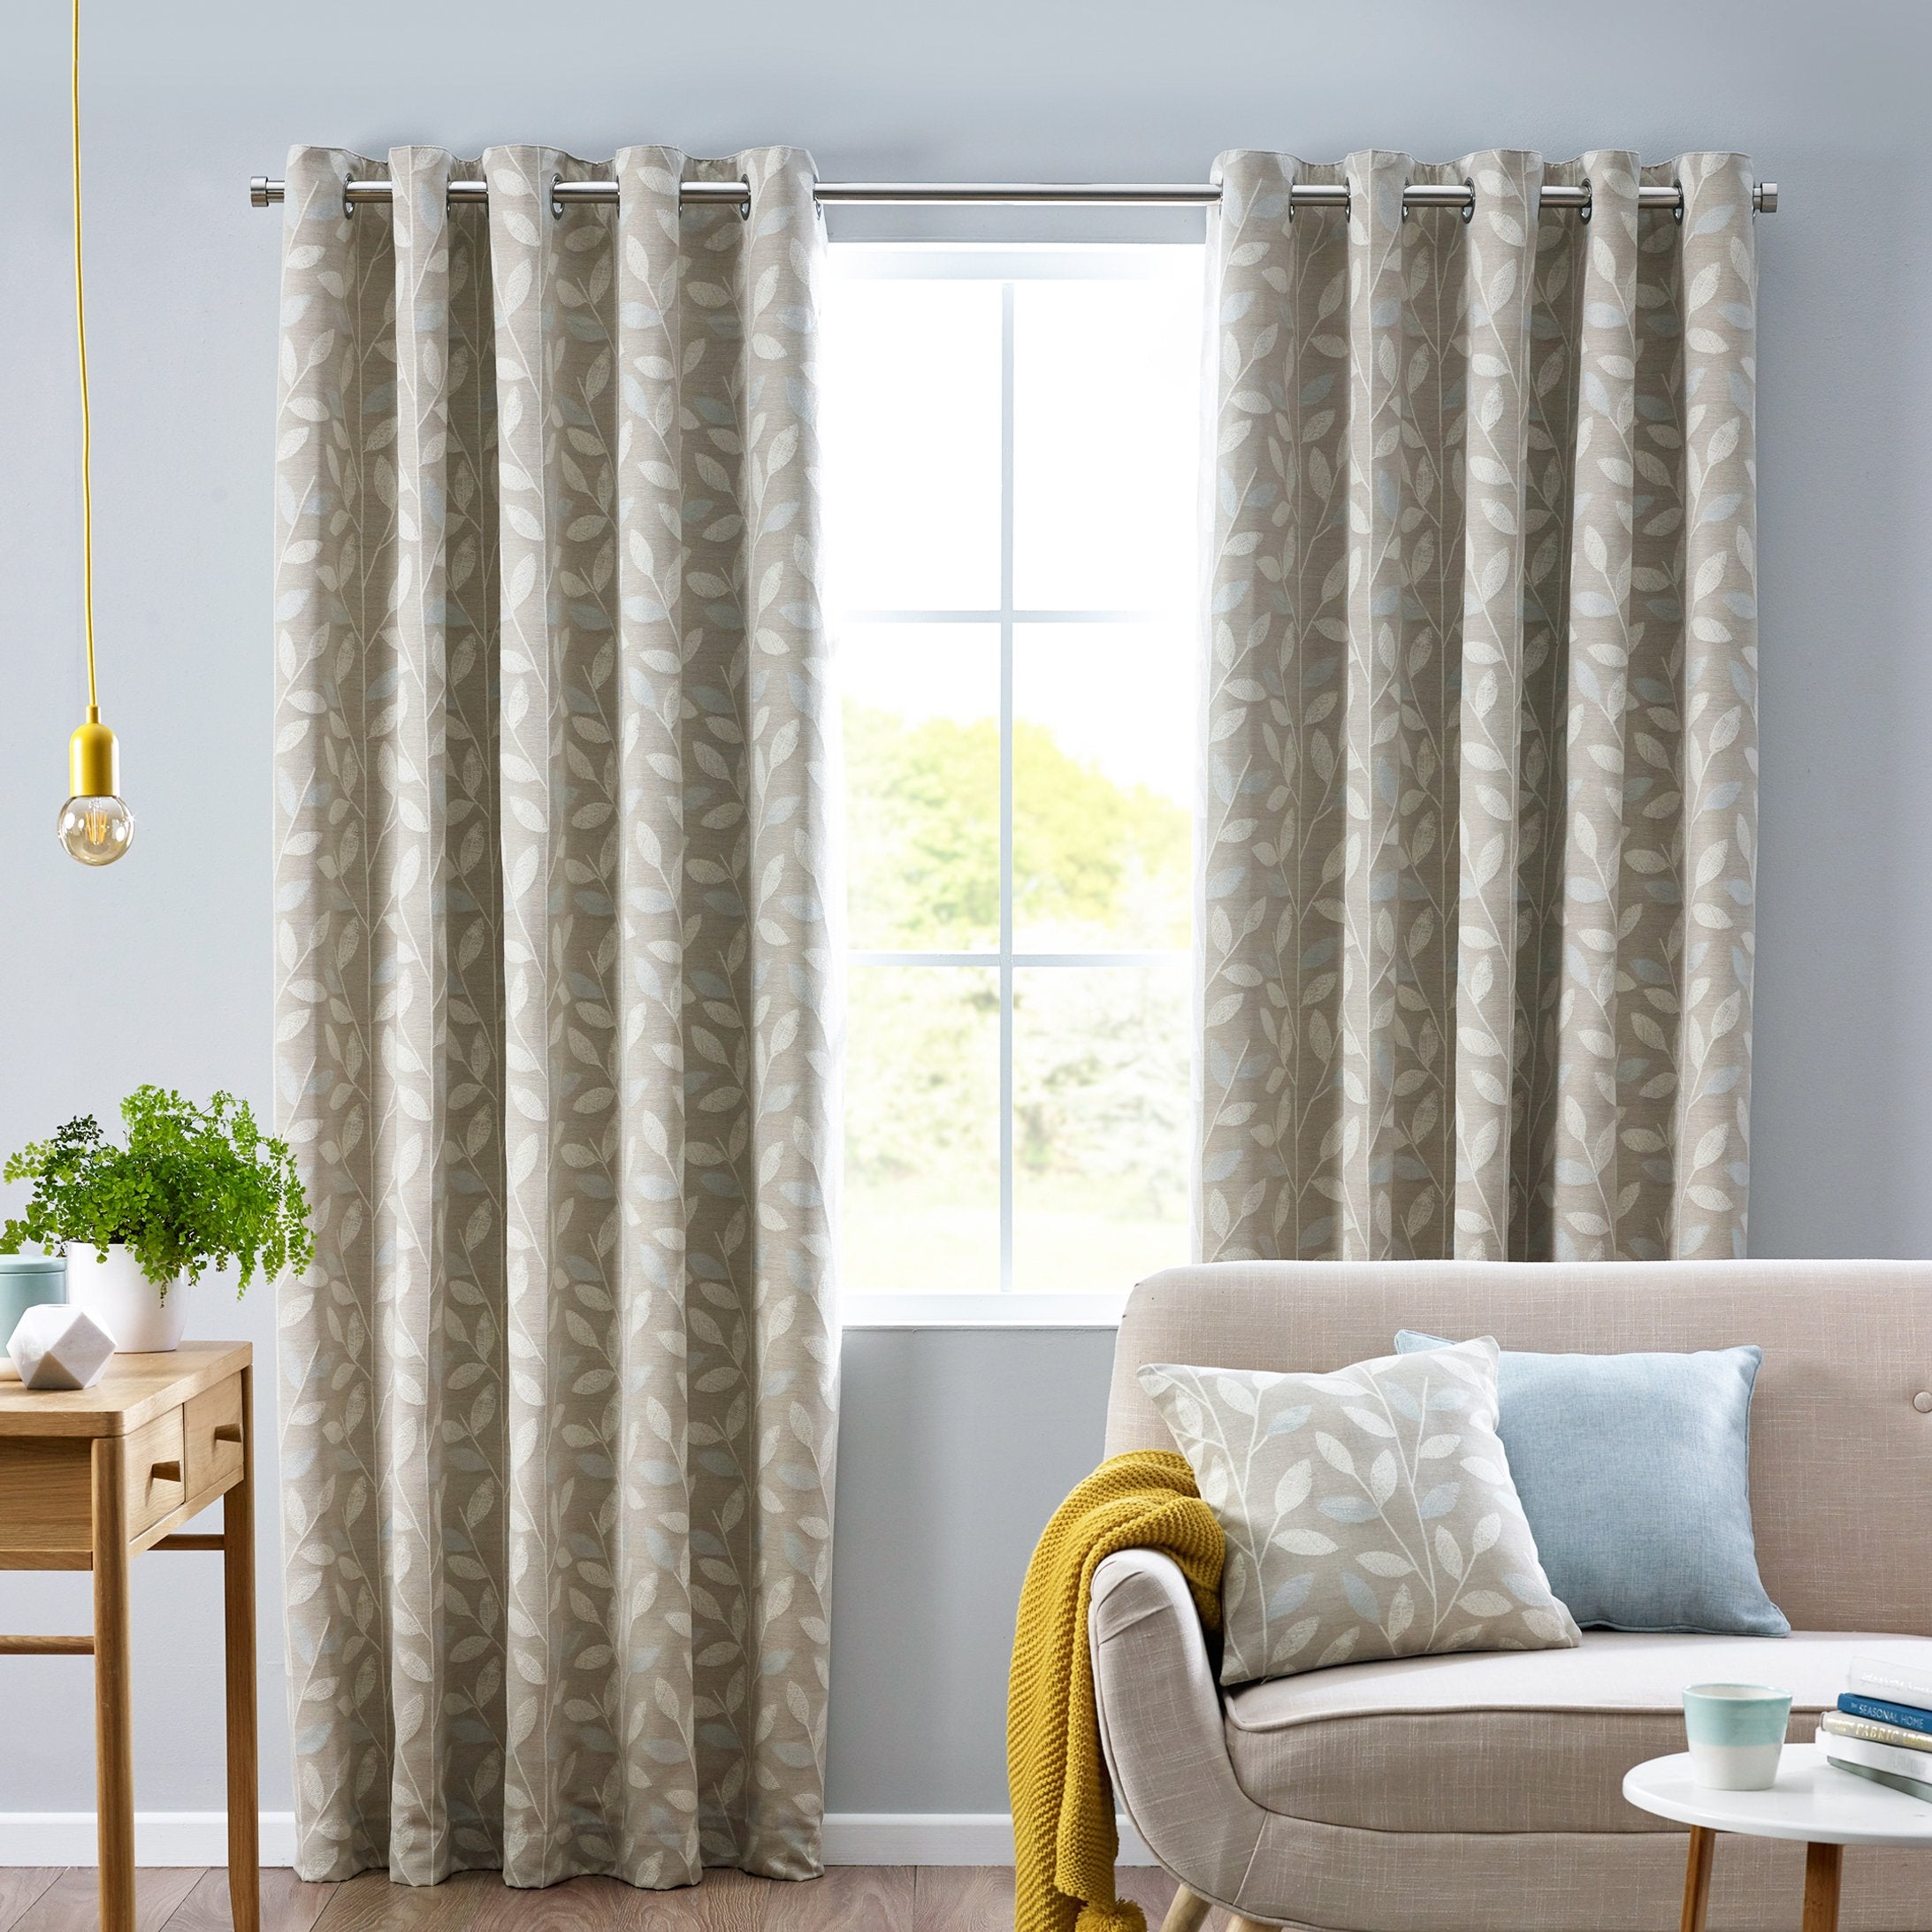 Belfields Ready Made Curtains Pippa Ready Made Eyelet Curtains Duckegg Picture